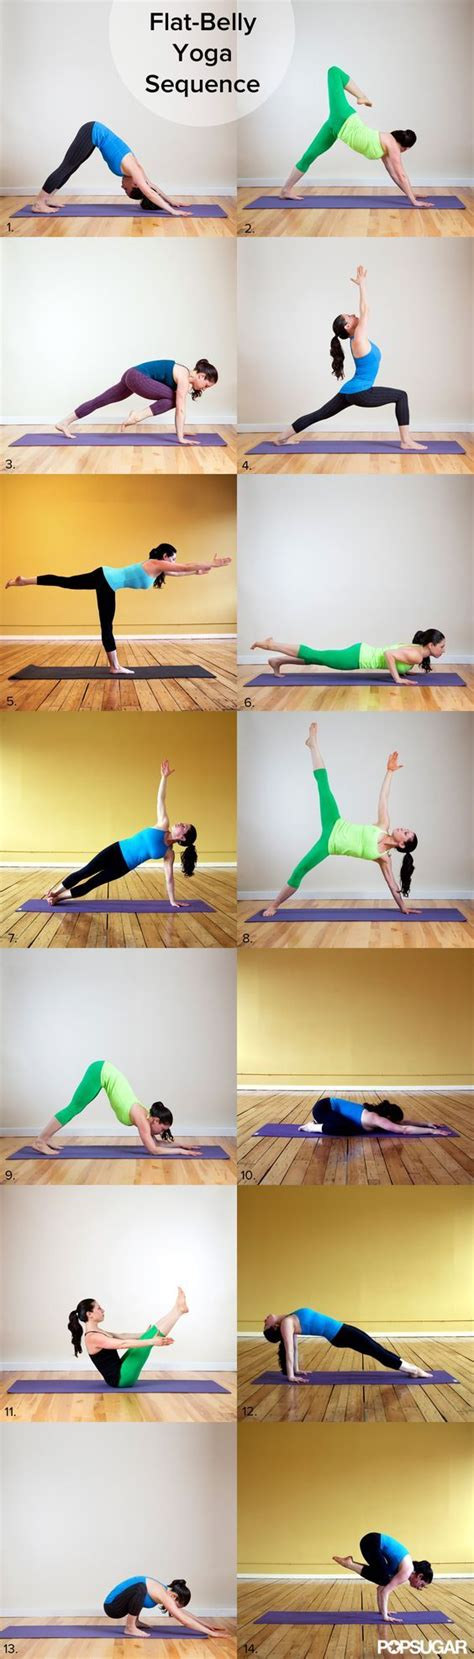 boat pose yoga sequence best yoga poses sequences for abs a flat belly a